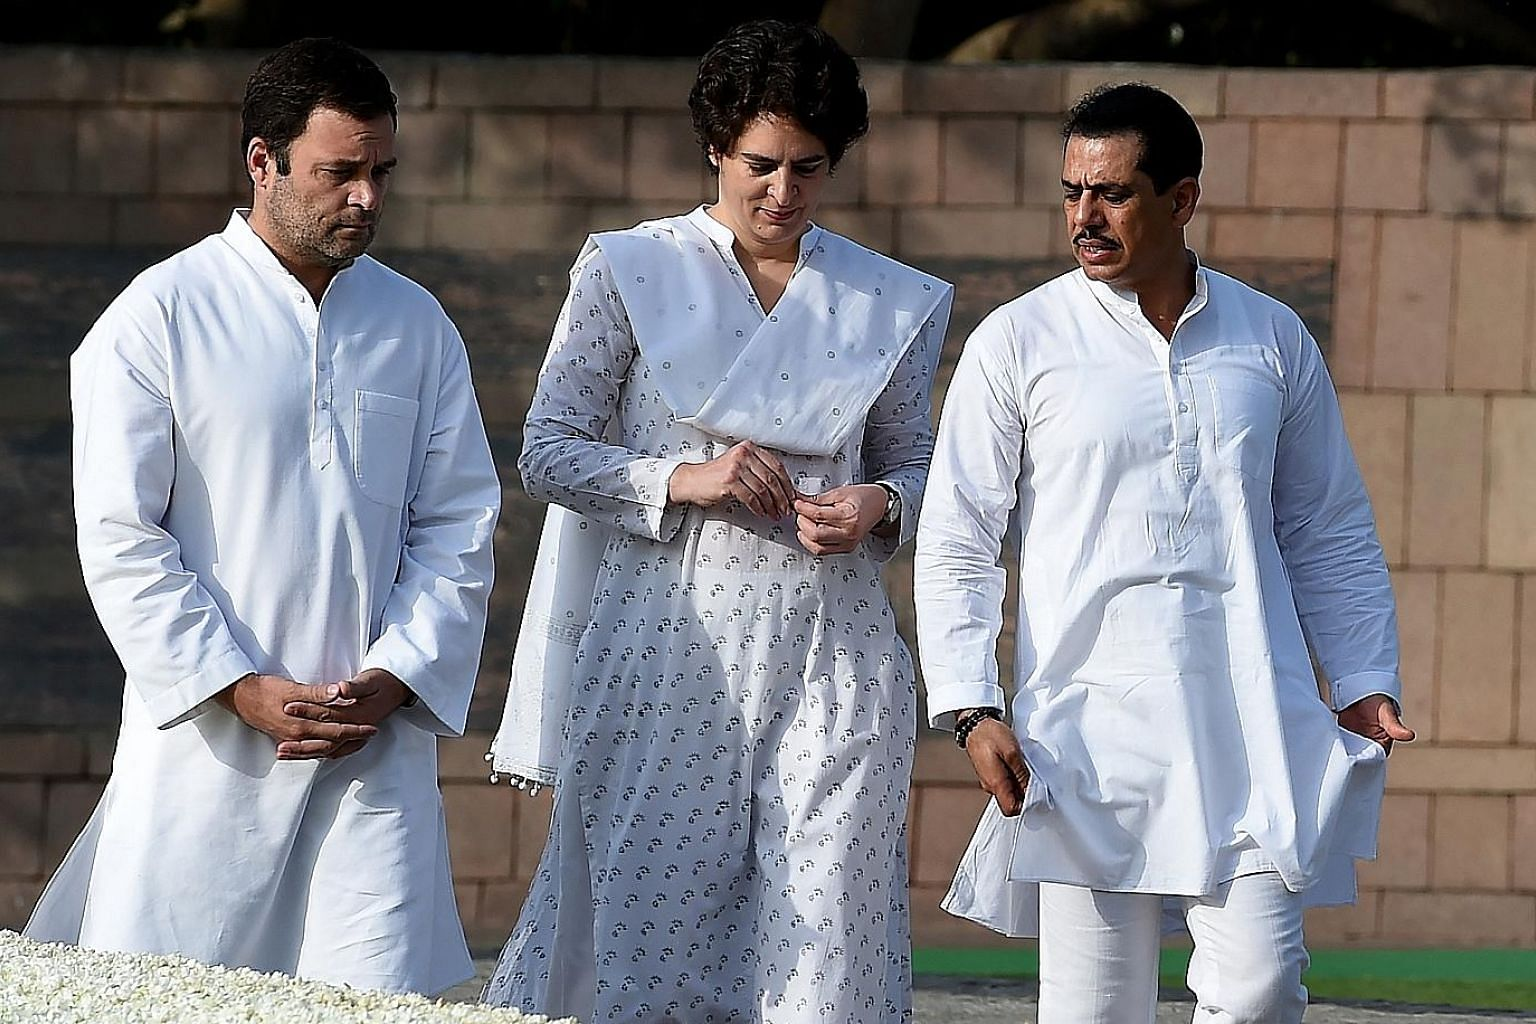 India's Congress party president Rahul Gandhi (left) with his sister Priyanka Gandhi and her husband Robert Vadra at a memorial ceremony for former Indian prime minister Rajiv Gandhi in New Delhi last May. Ms Gandhi is due to hold her first press con